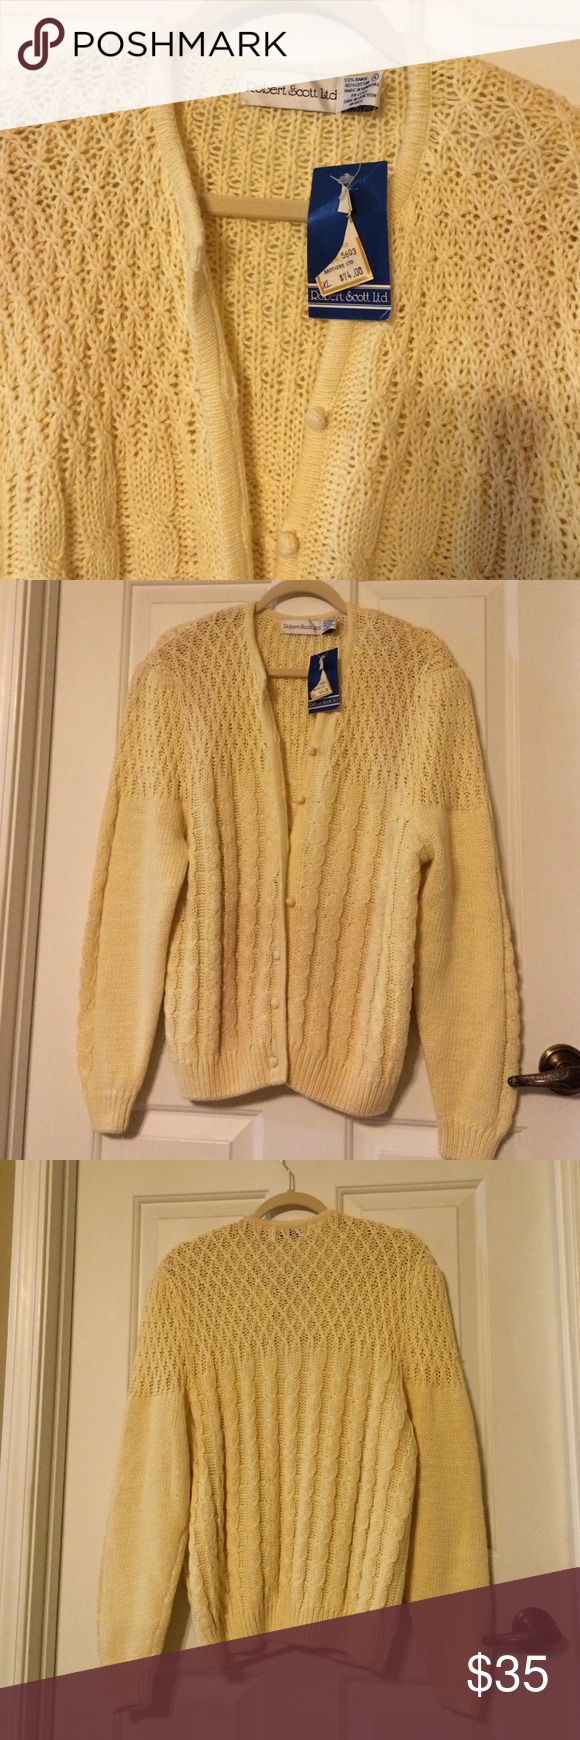 Robert Scott Cardigan Sweater / NEW Great Christmas Gift for MOM :) very pretty and easy to button and unbutton :) Robert Scott LTD Sweaters Cardigans